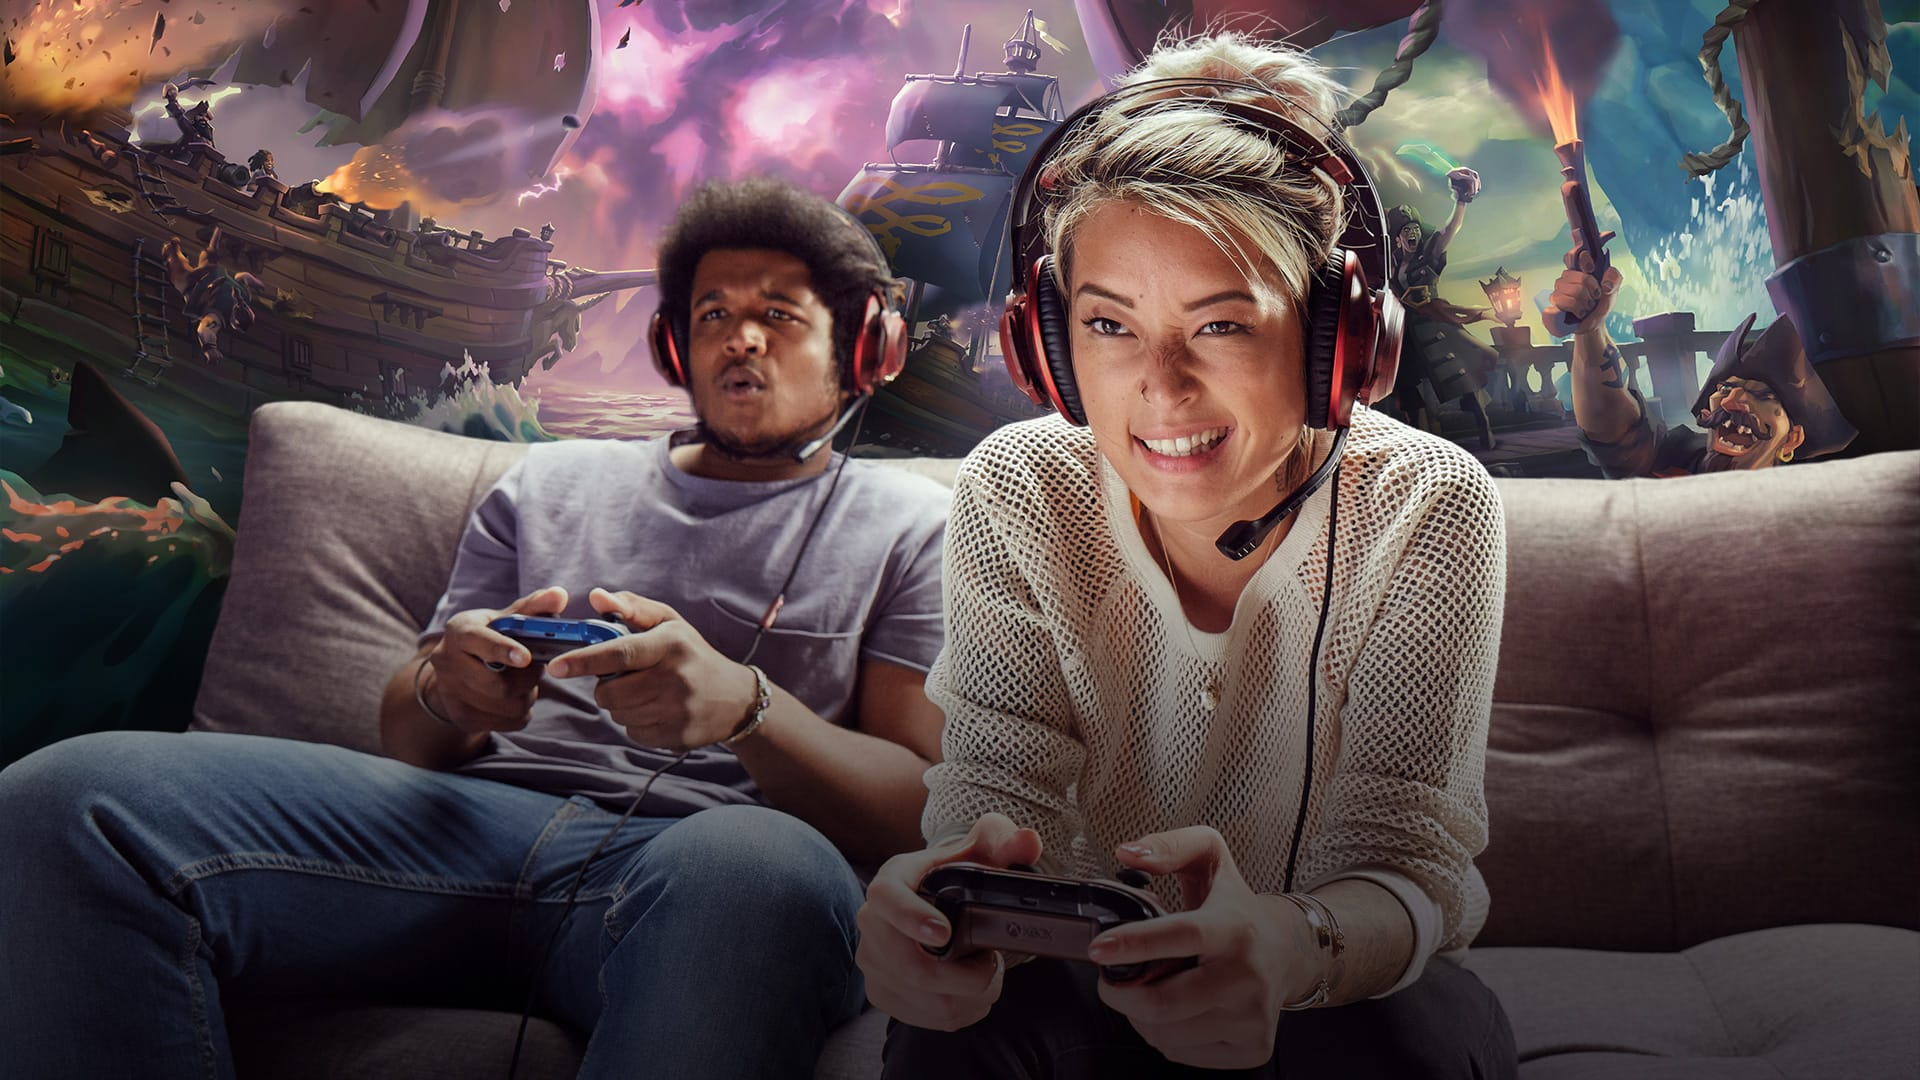 To personer med headset, der spiller Sea of Thieves på en sofa